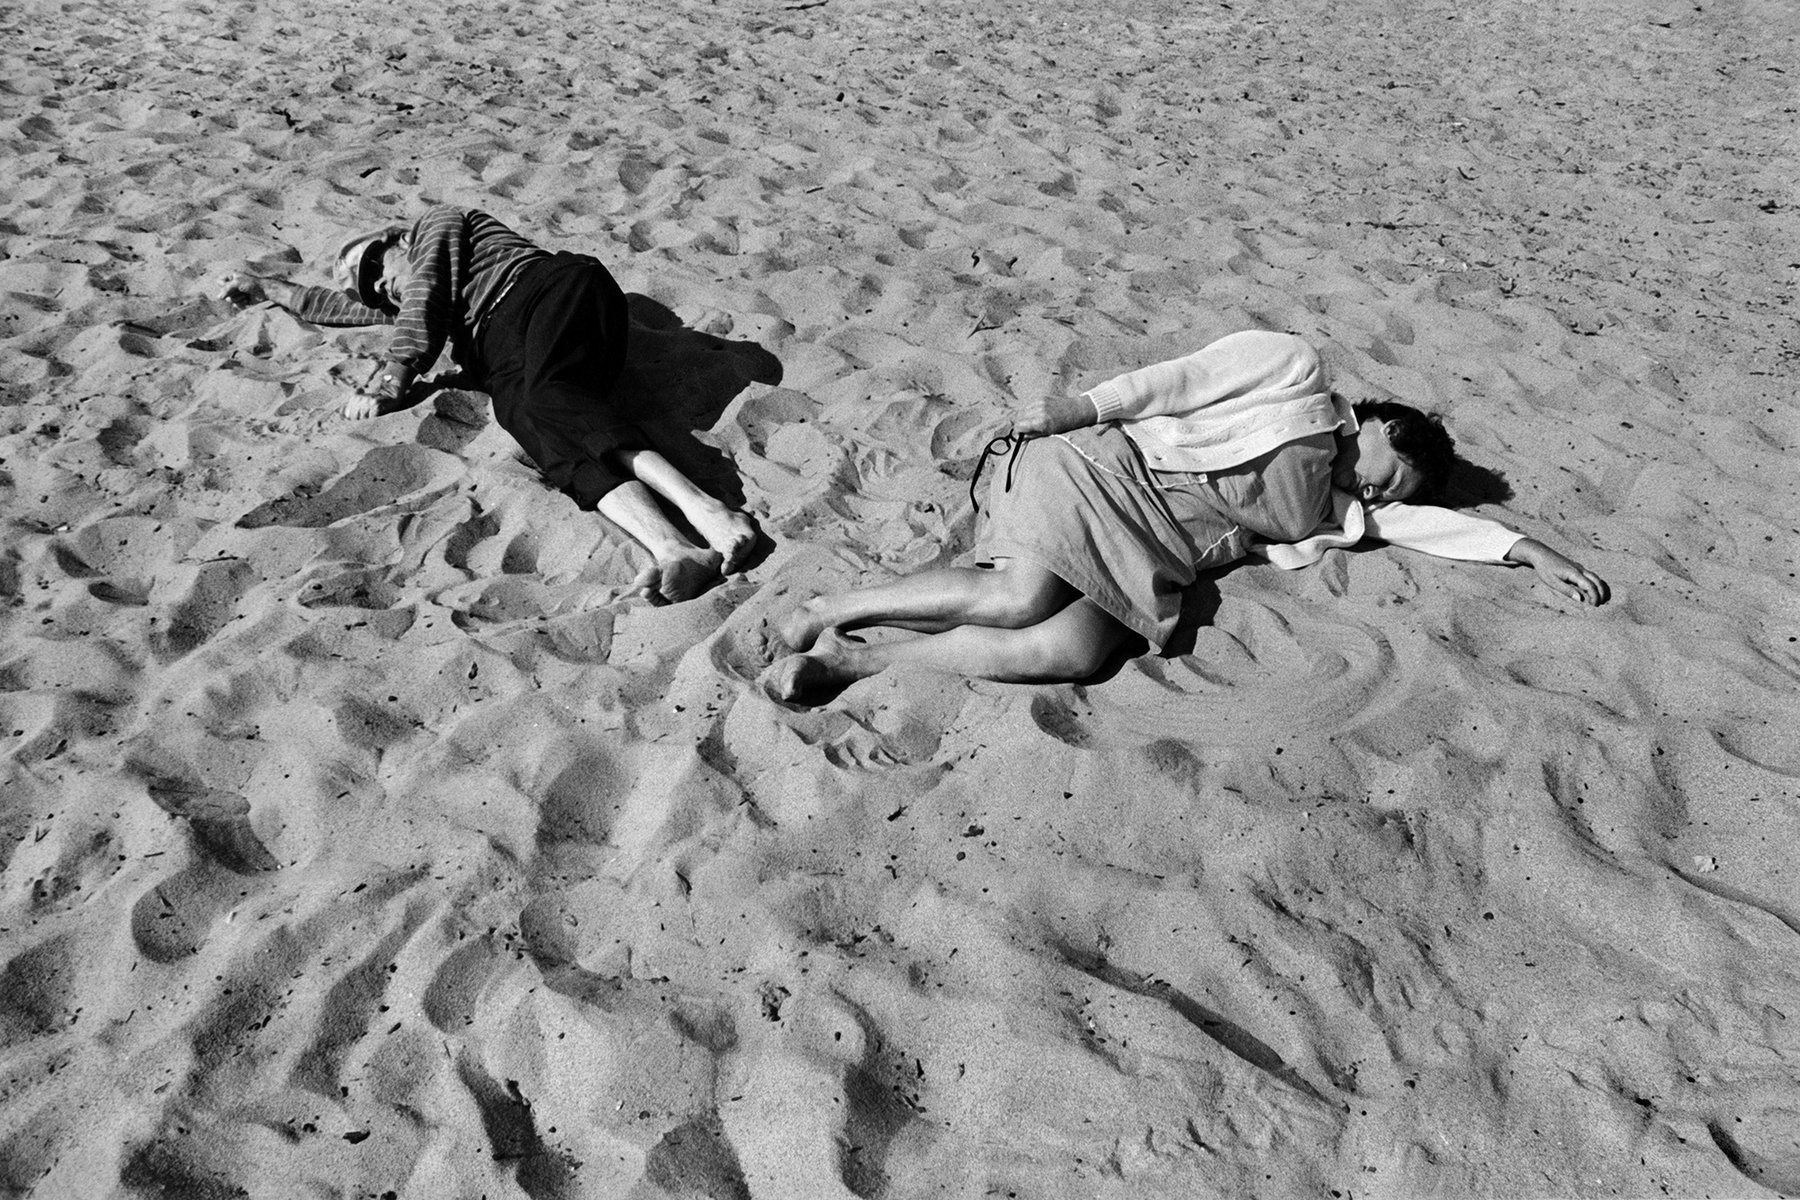 Two people lay in the sand